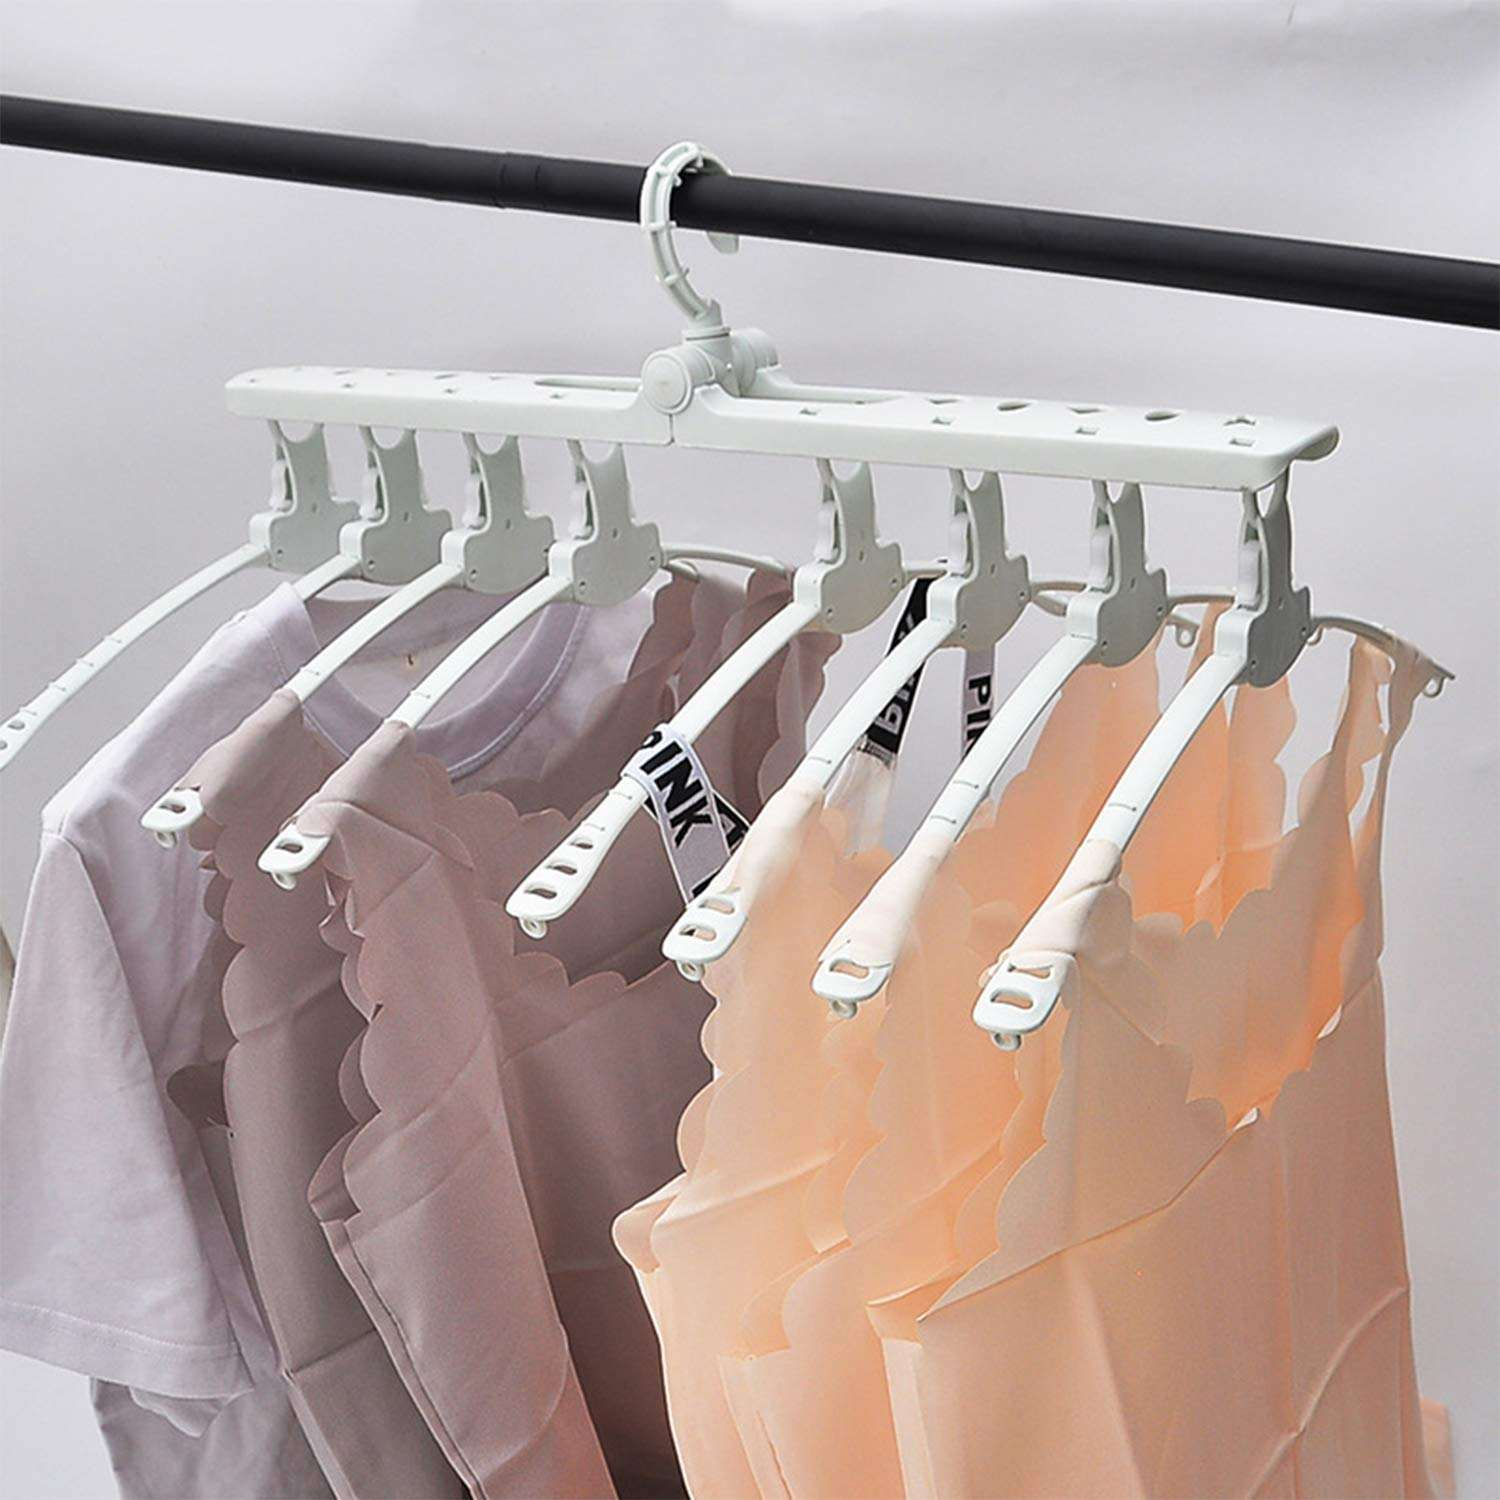 Non-slip Muti Function Folding Plastic Magic Adjustable Clothes Hanger Rack Swivel Head Wardrobe Laundry Hanger